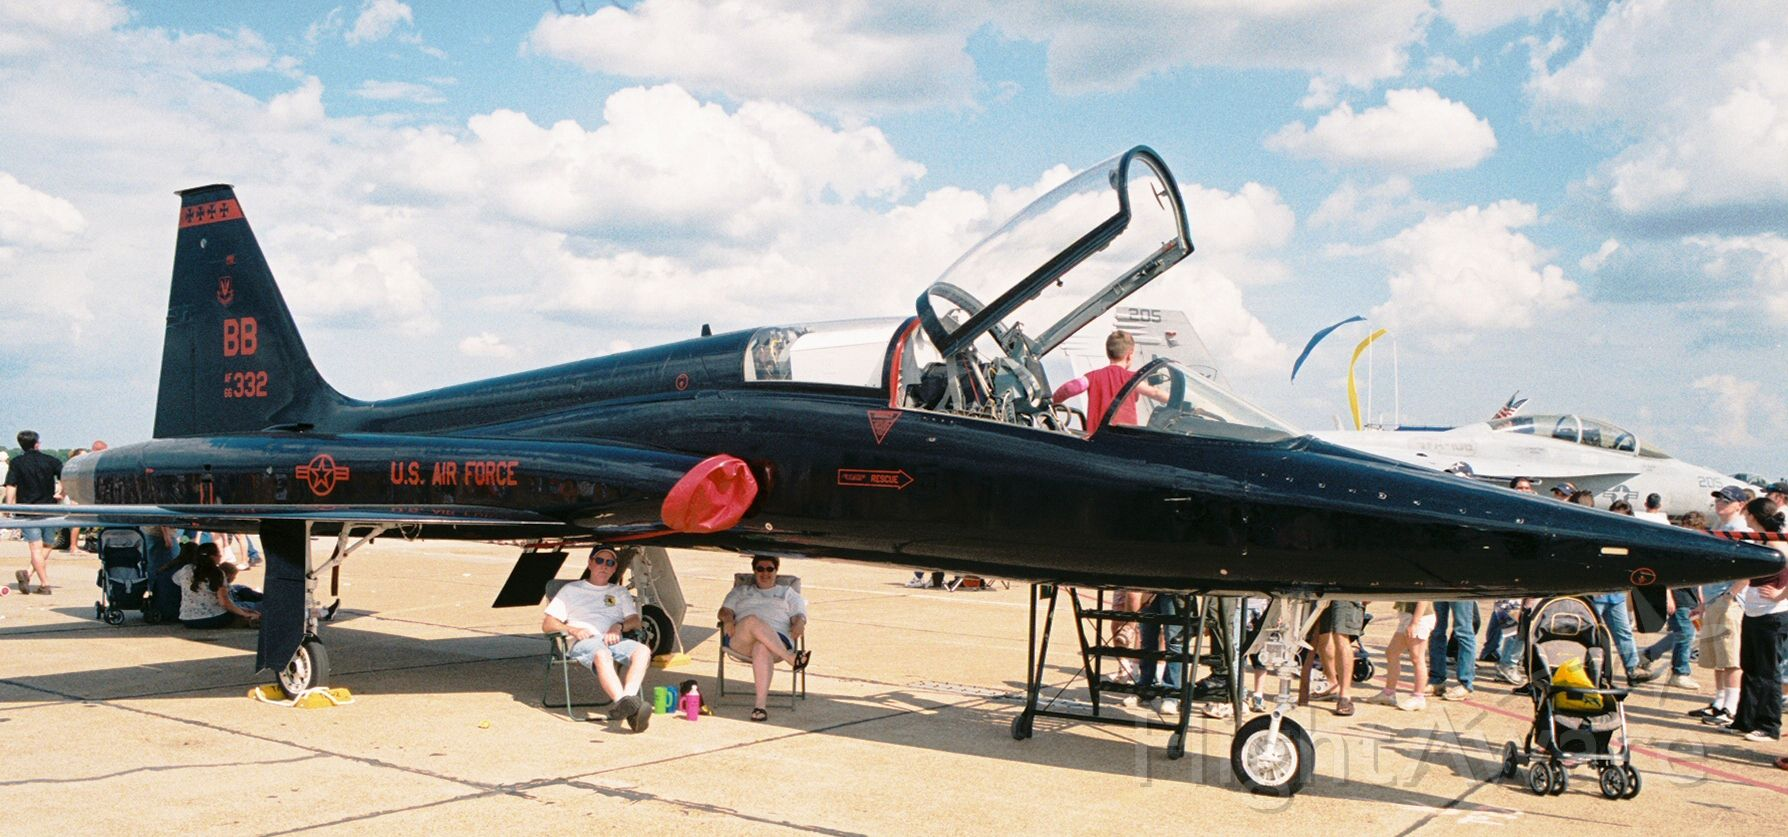 Northrop T-38 Talon (66-4332) - T-38A Talon, USAF s/n 66-4332, c/n N.5908, from the 9th Reconnaissance Wing, Beale AFB, photographed at the Barksdale AFB Airshow in 2005.